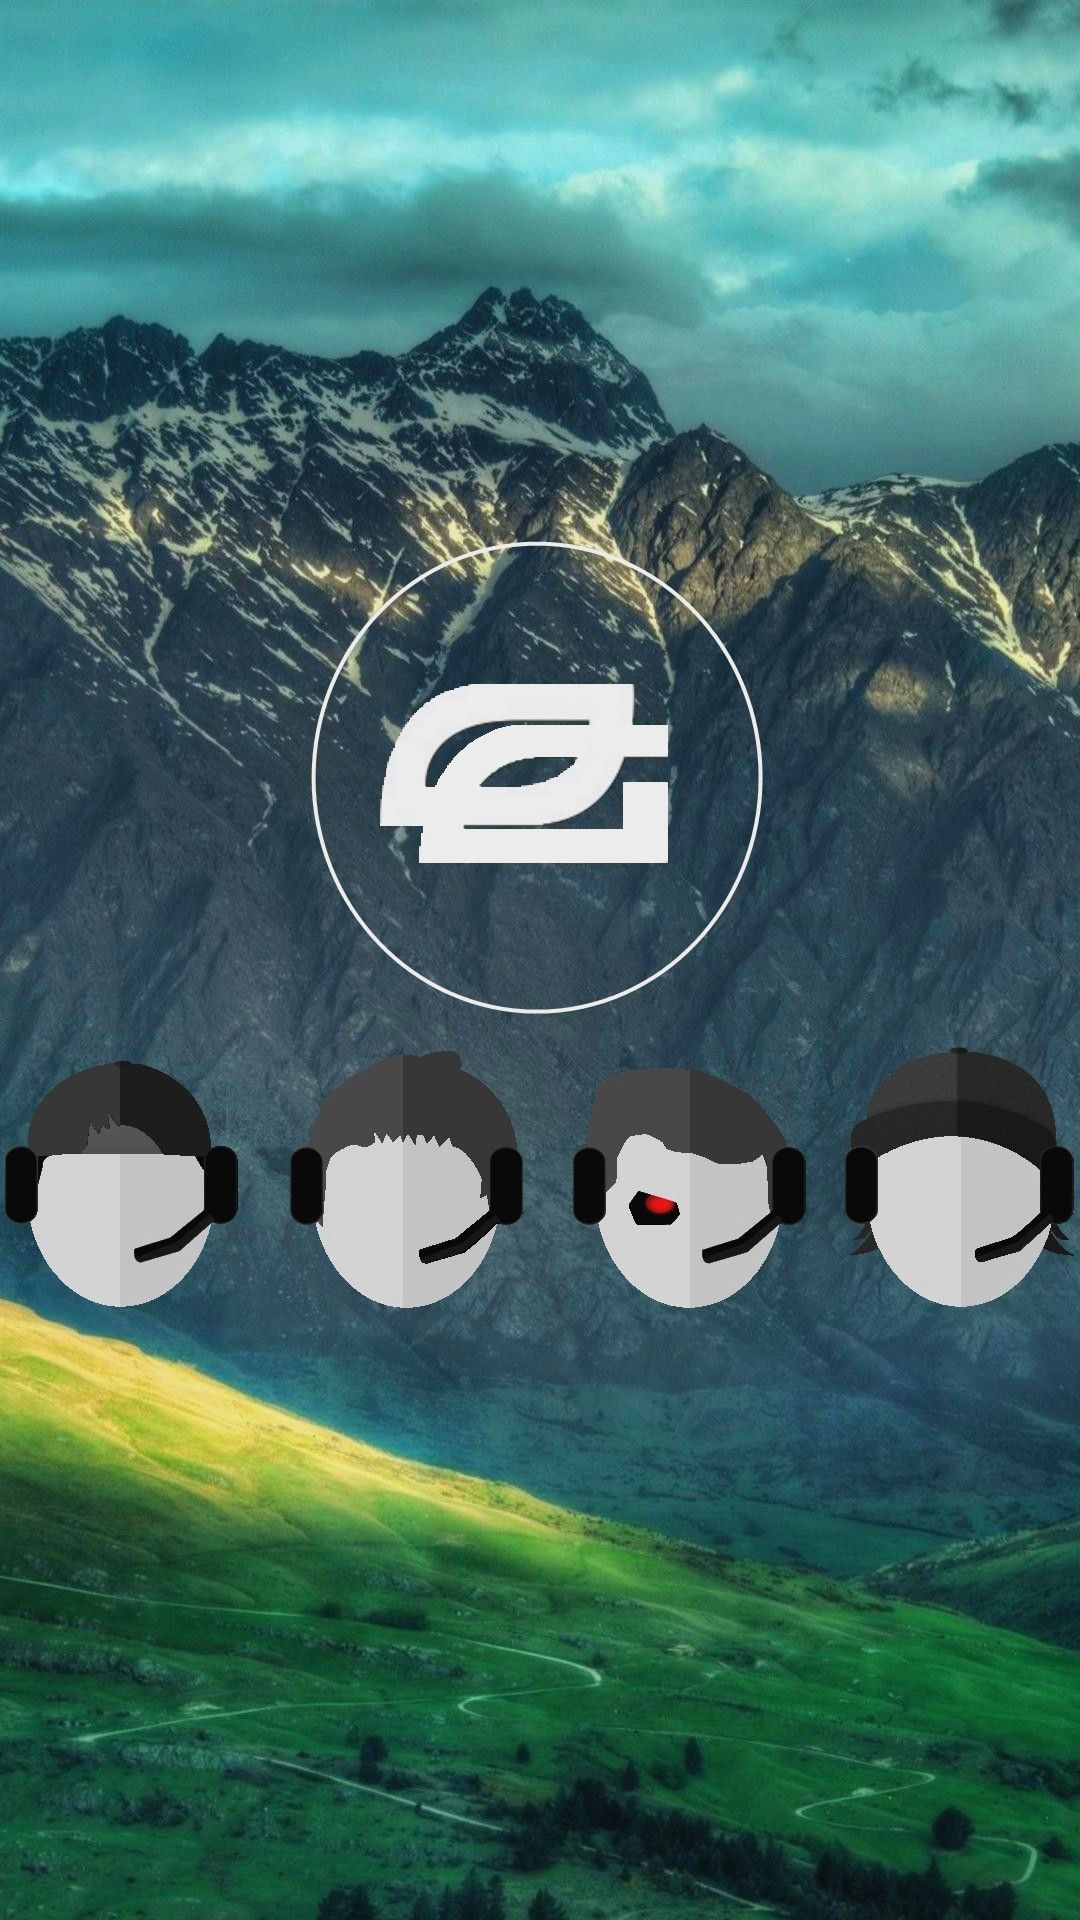 Optic Gaming Best Wallpapers Android Gaming Wallpapers Game Wallpaper Iphone